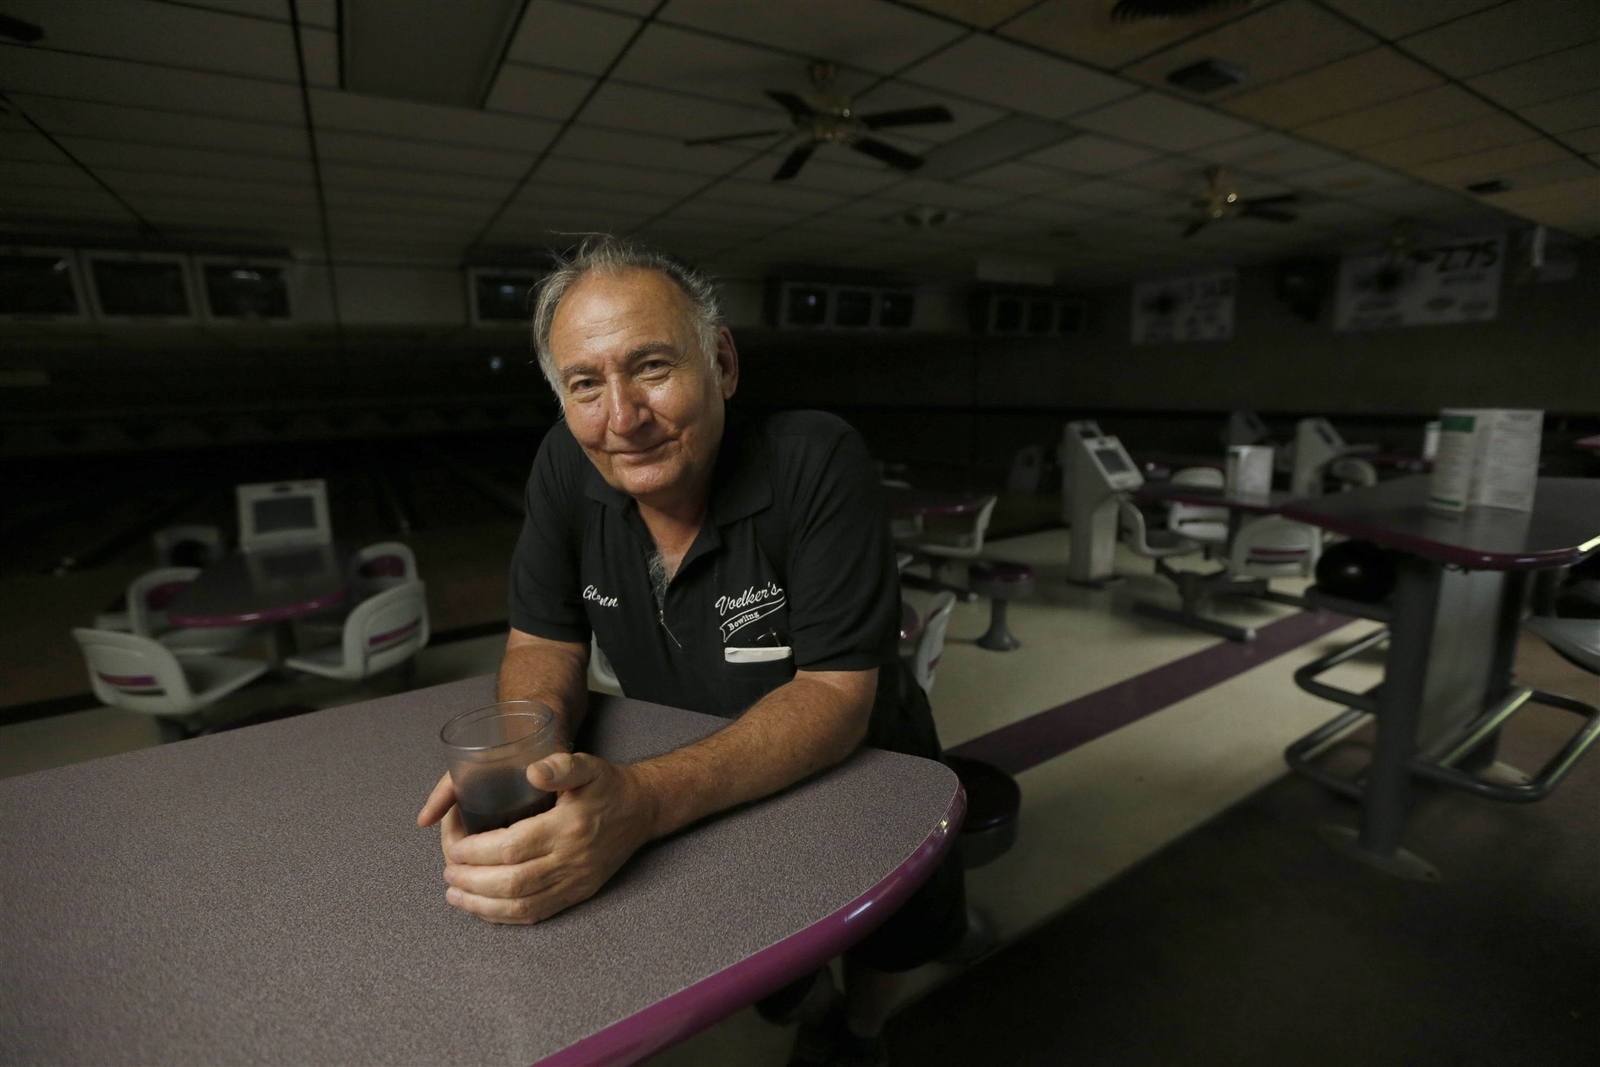 Glenn Voelker with his signature glass of black coffee in the bowling alley section of his family's establishment. He greets customers with a smile.